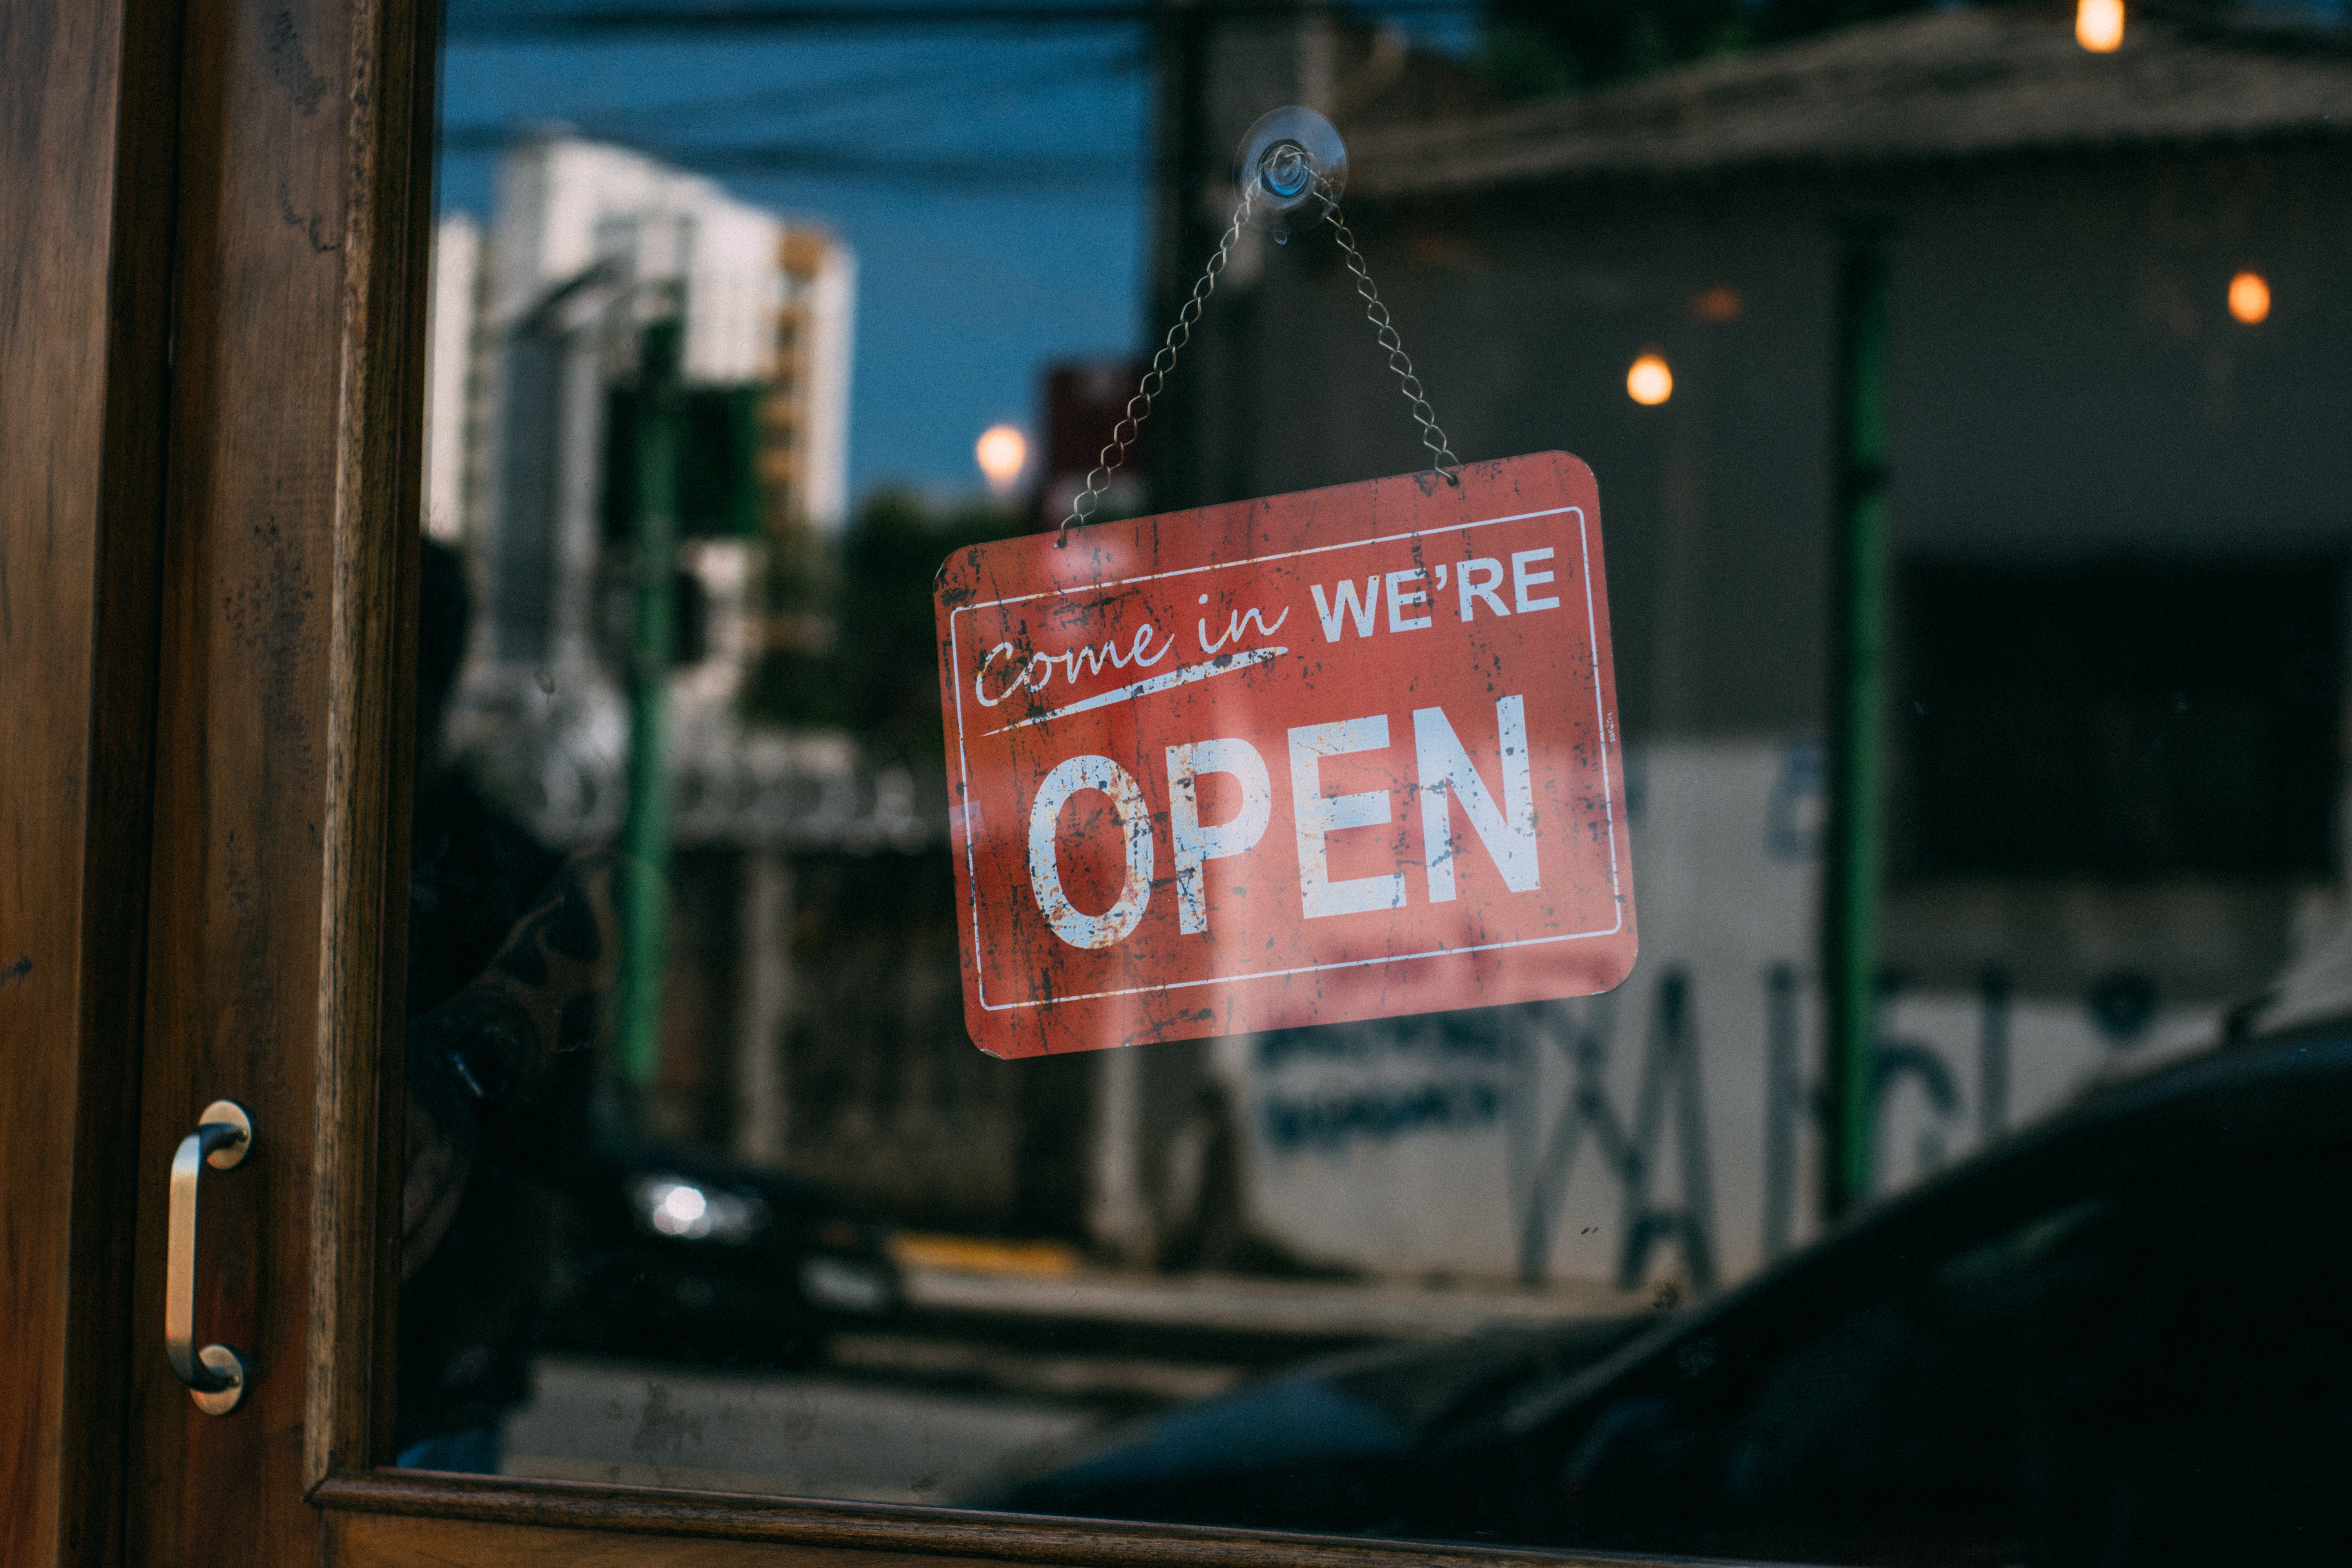 How to Promote Your Business in the Community